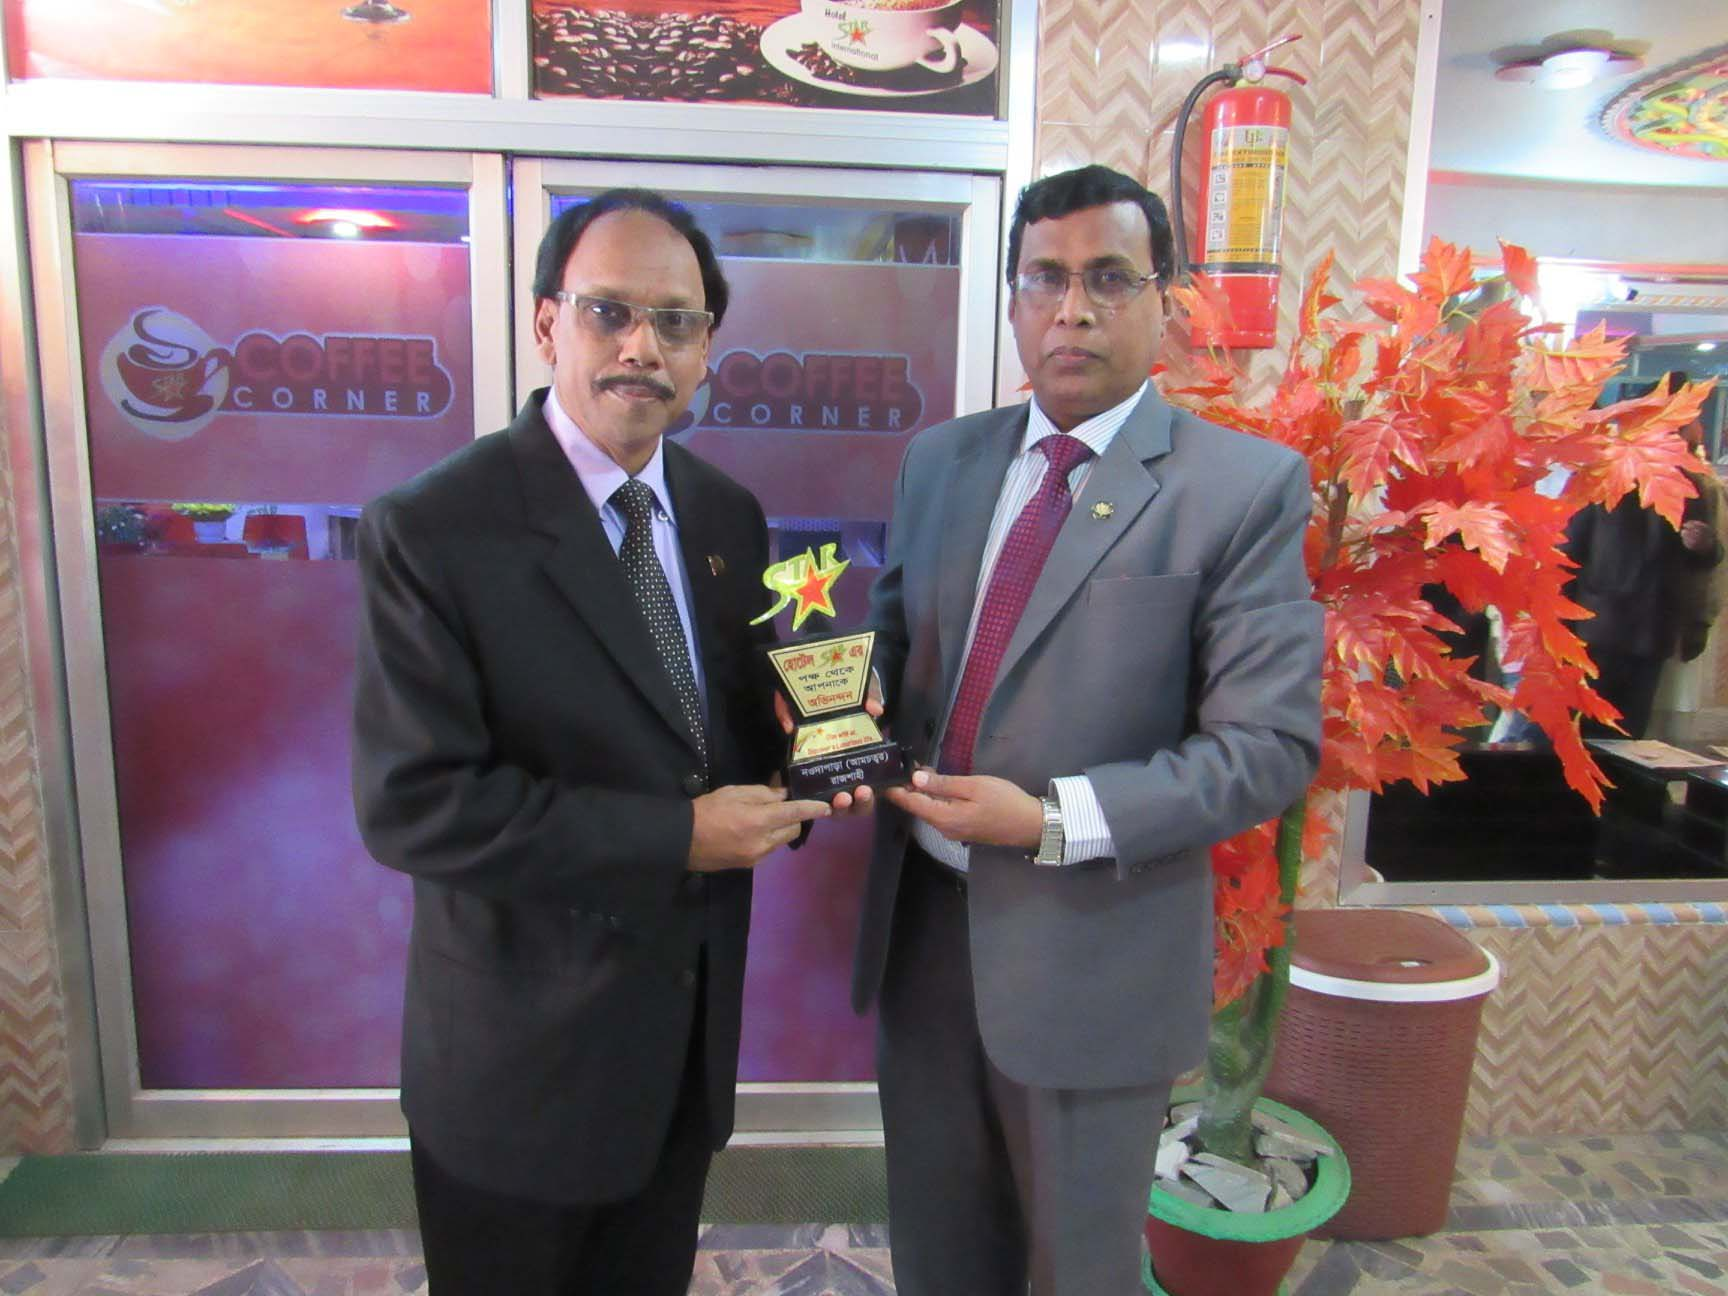 Hotel Star Chairman gives crest gift to Honorable guest